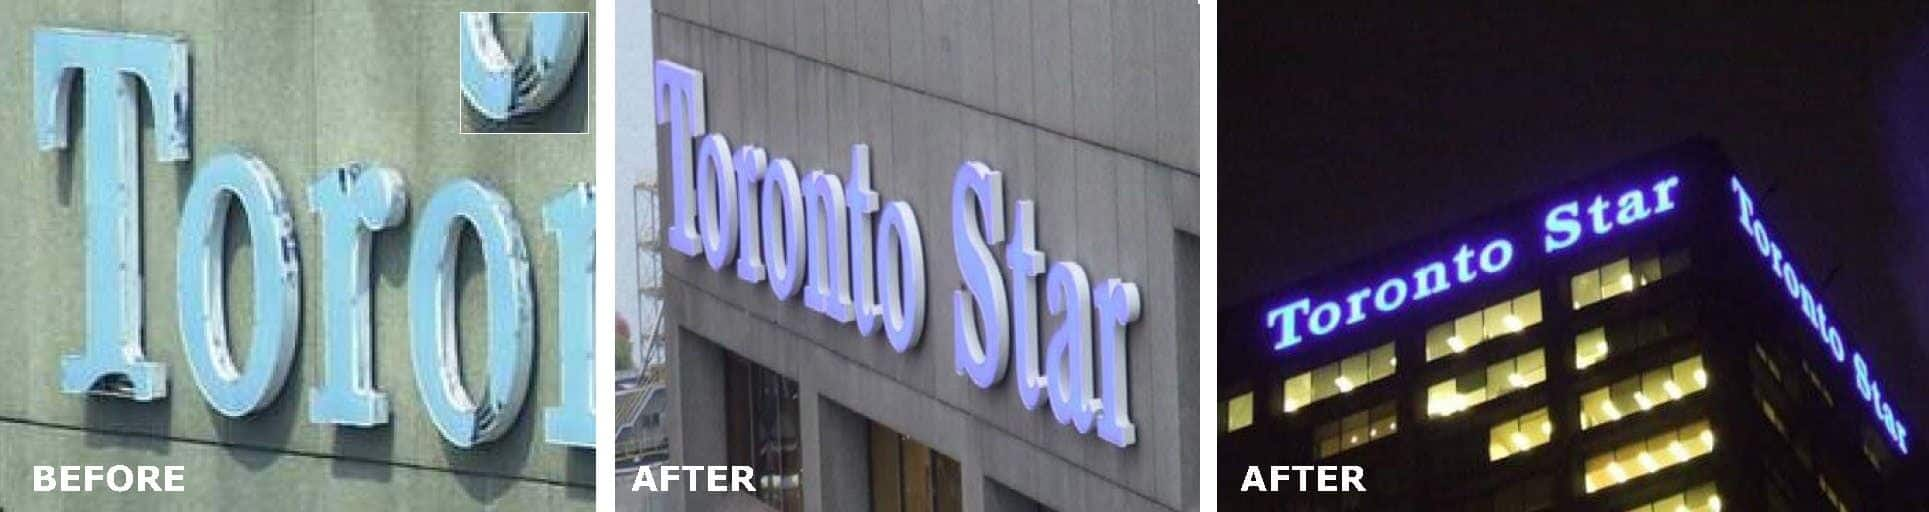 Toronto-Star-Detail-new